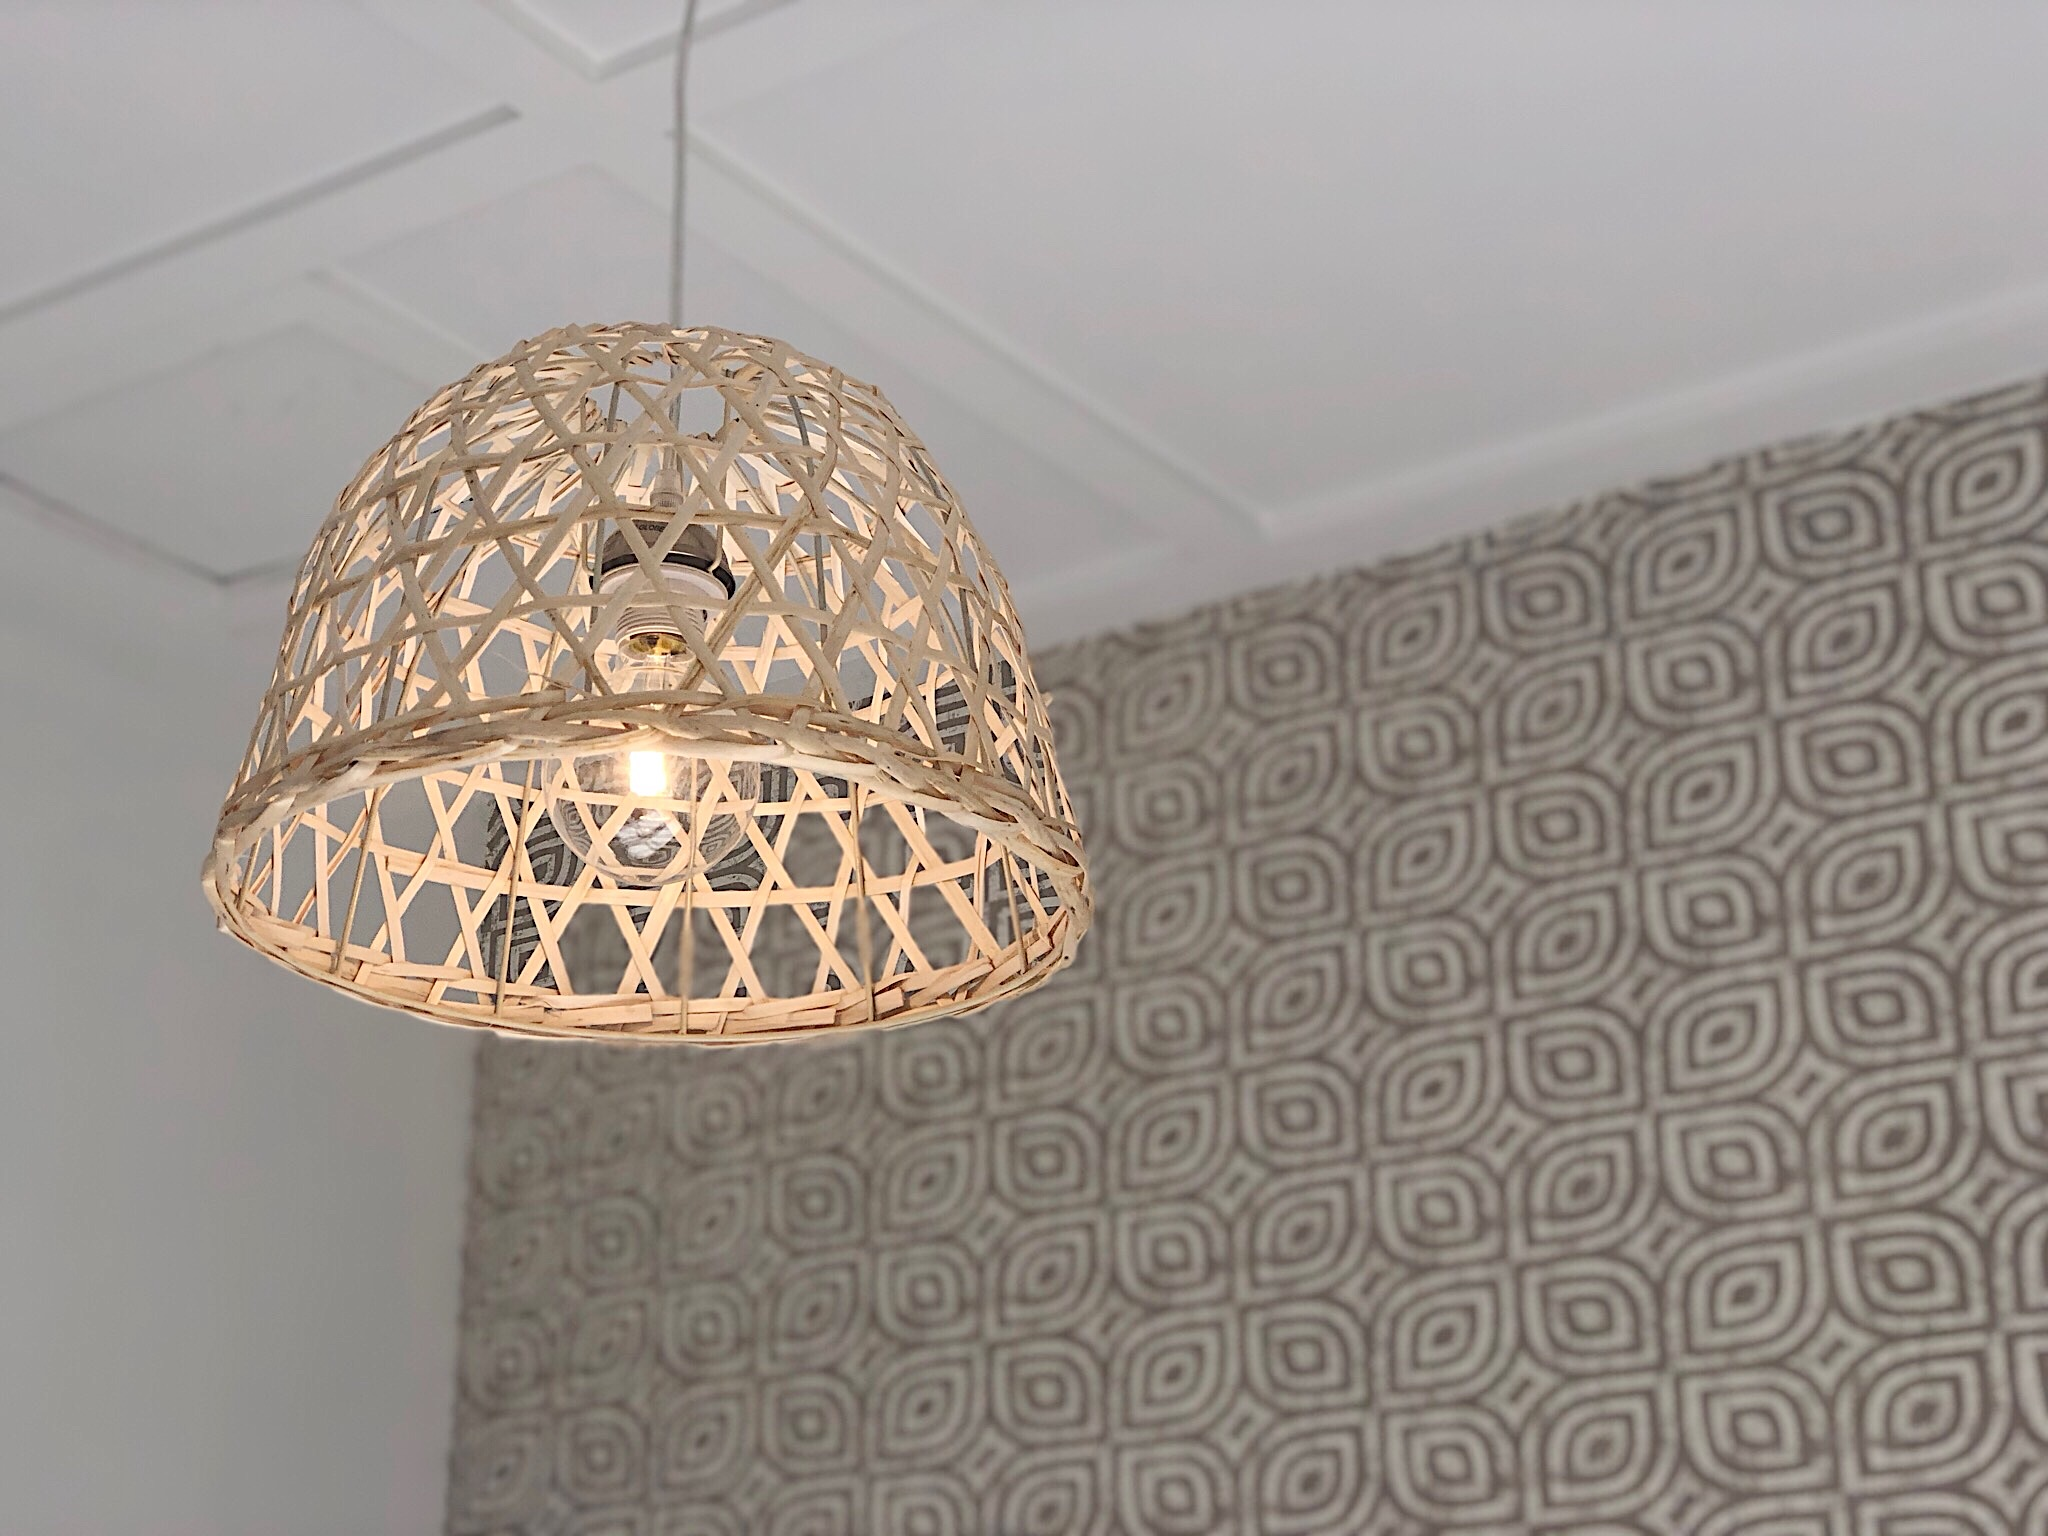 Pearson + Projects The Expert Reveal Bedroom Renovation Budget Light Pendant Wowen.jpg